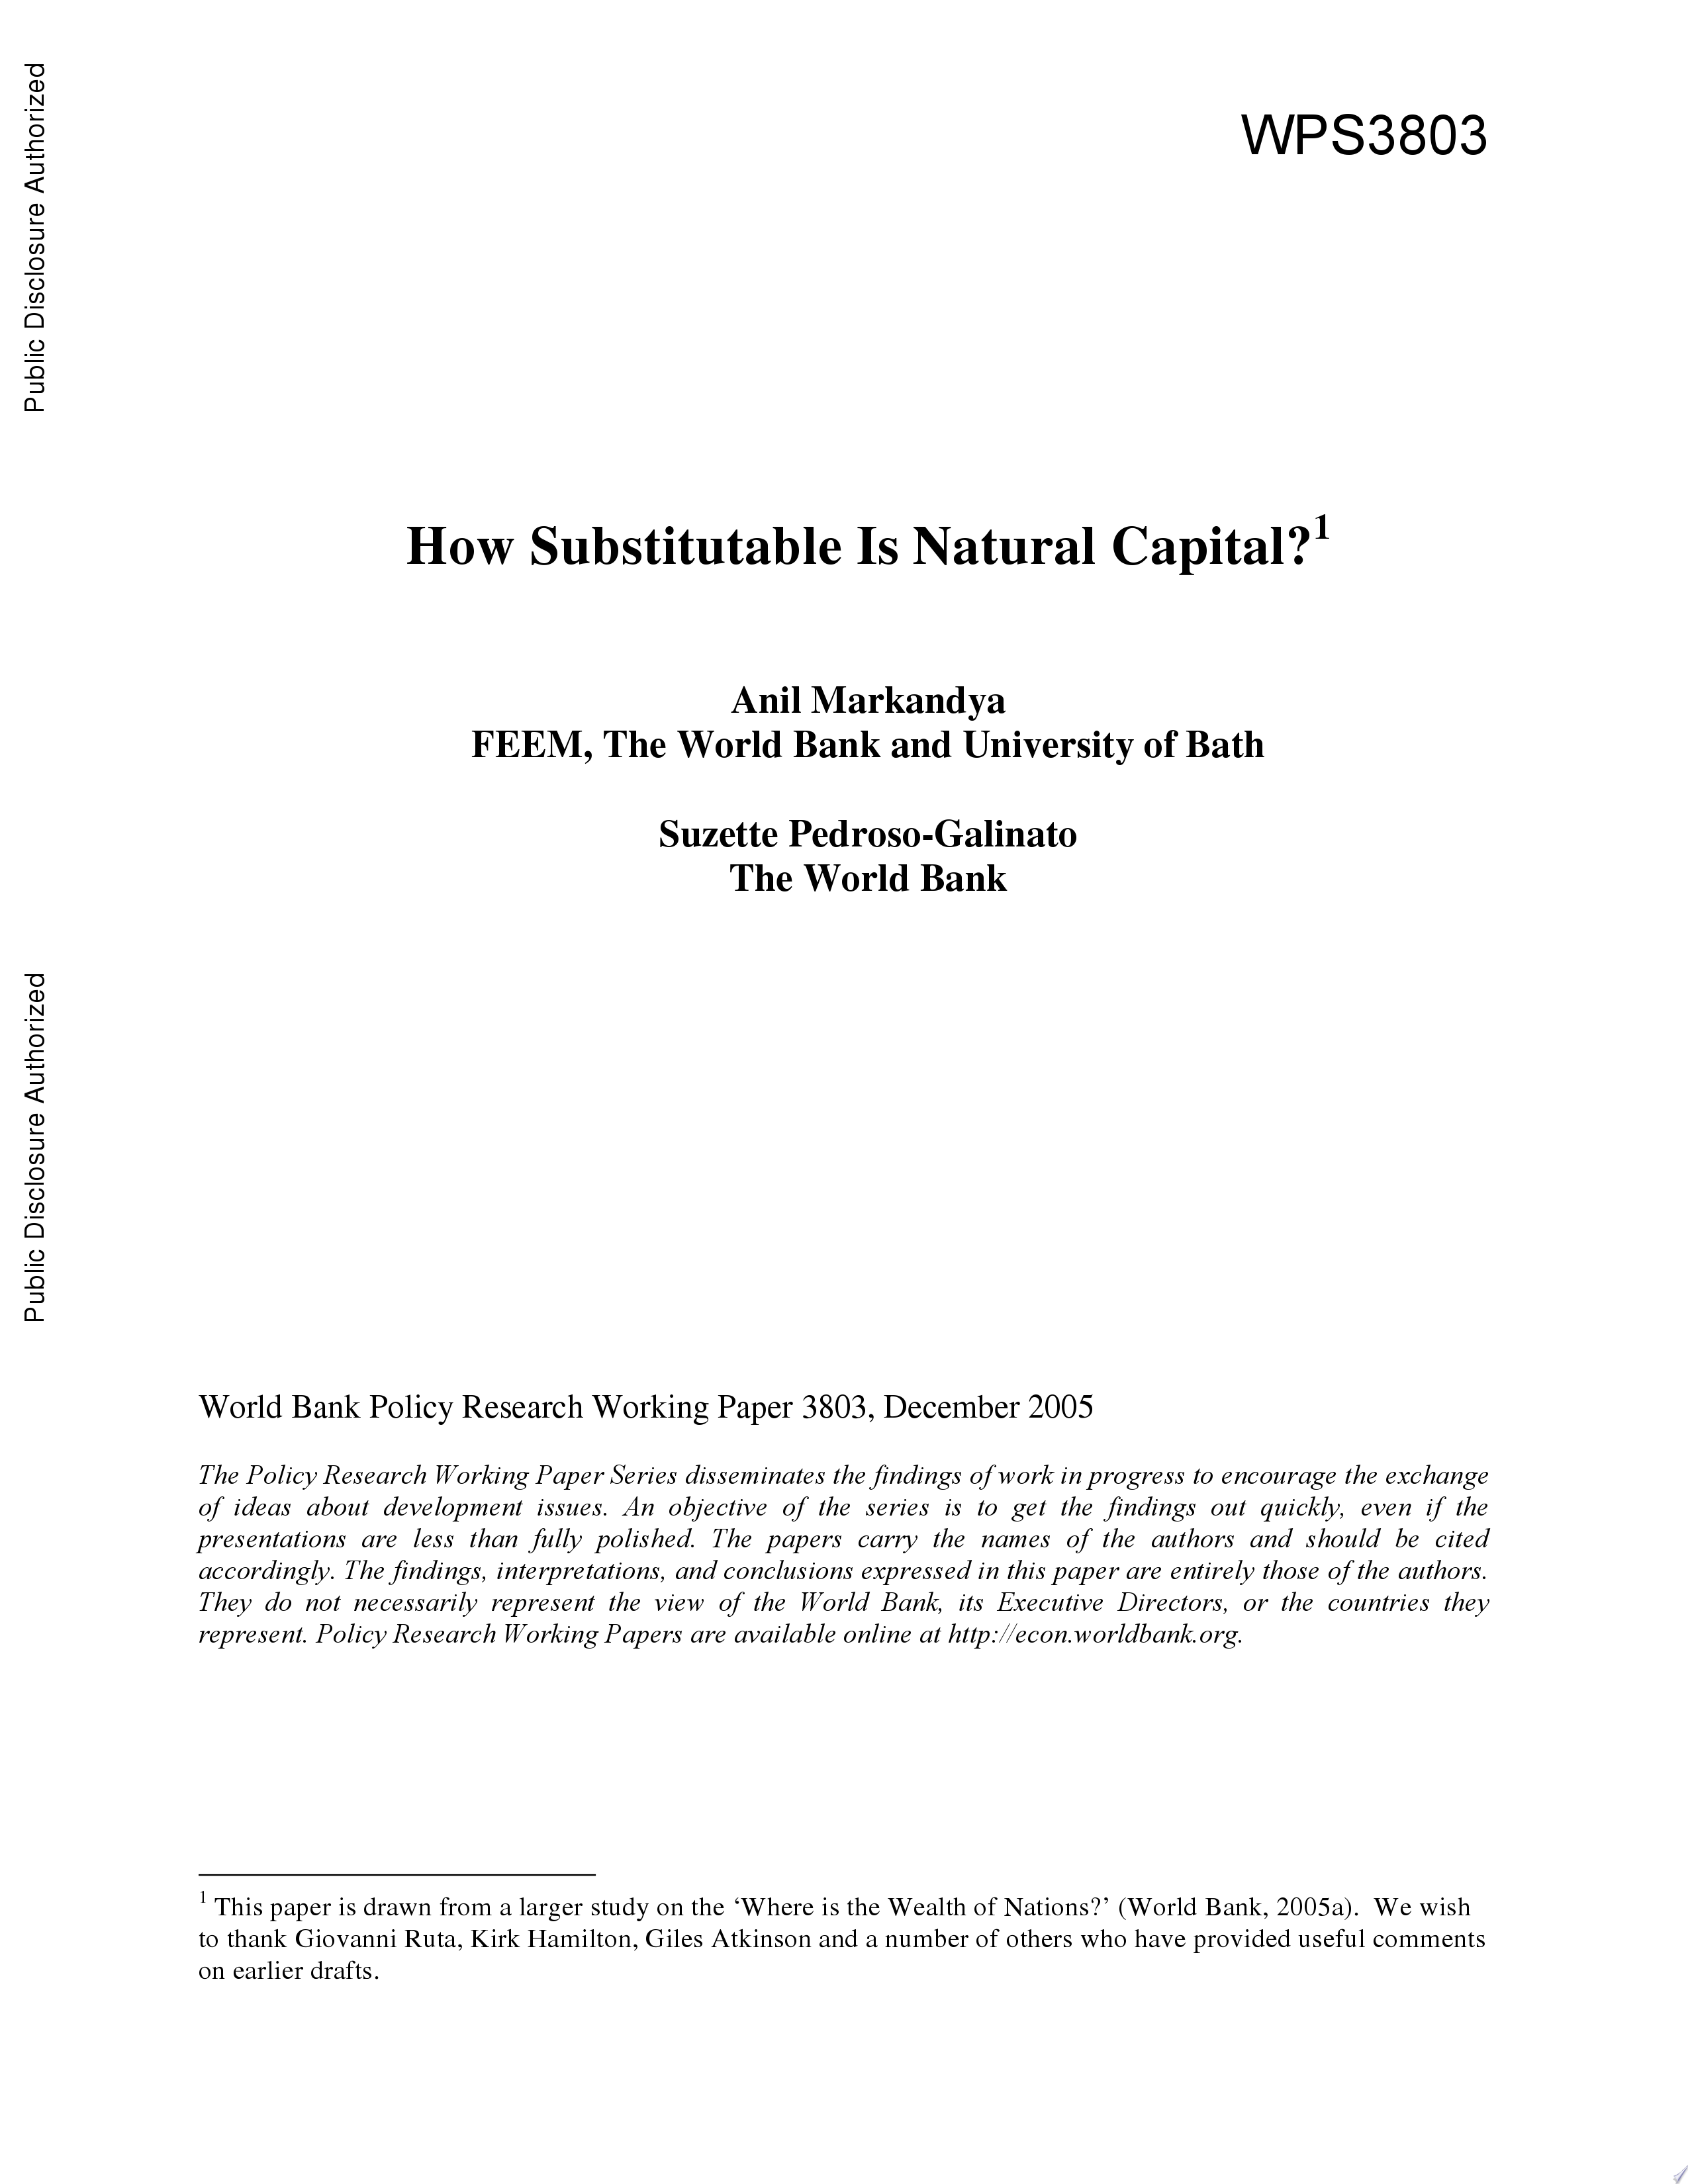 How Substitutable is Natural Capital